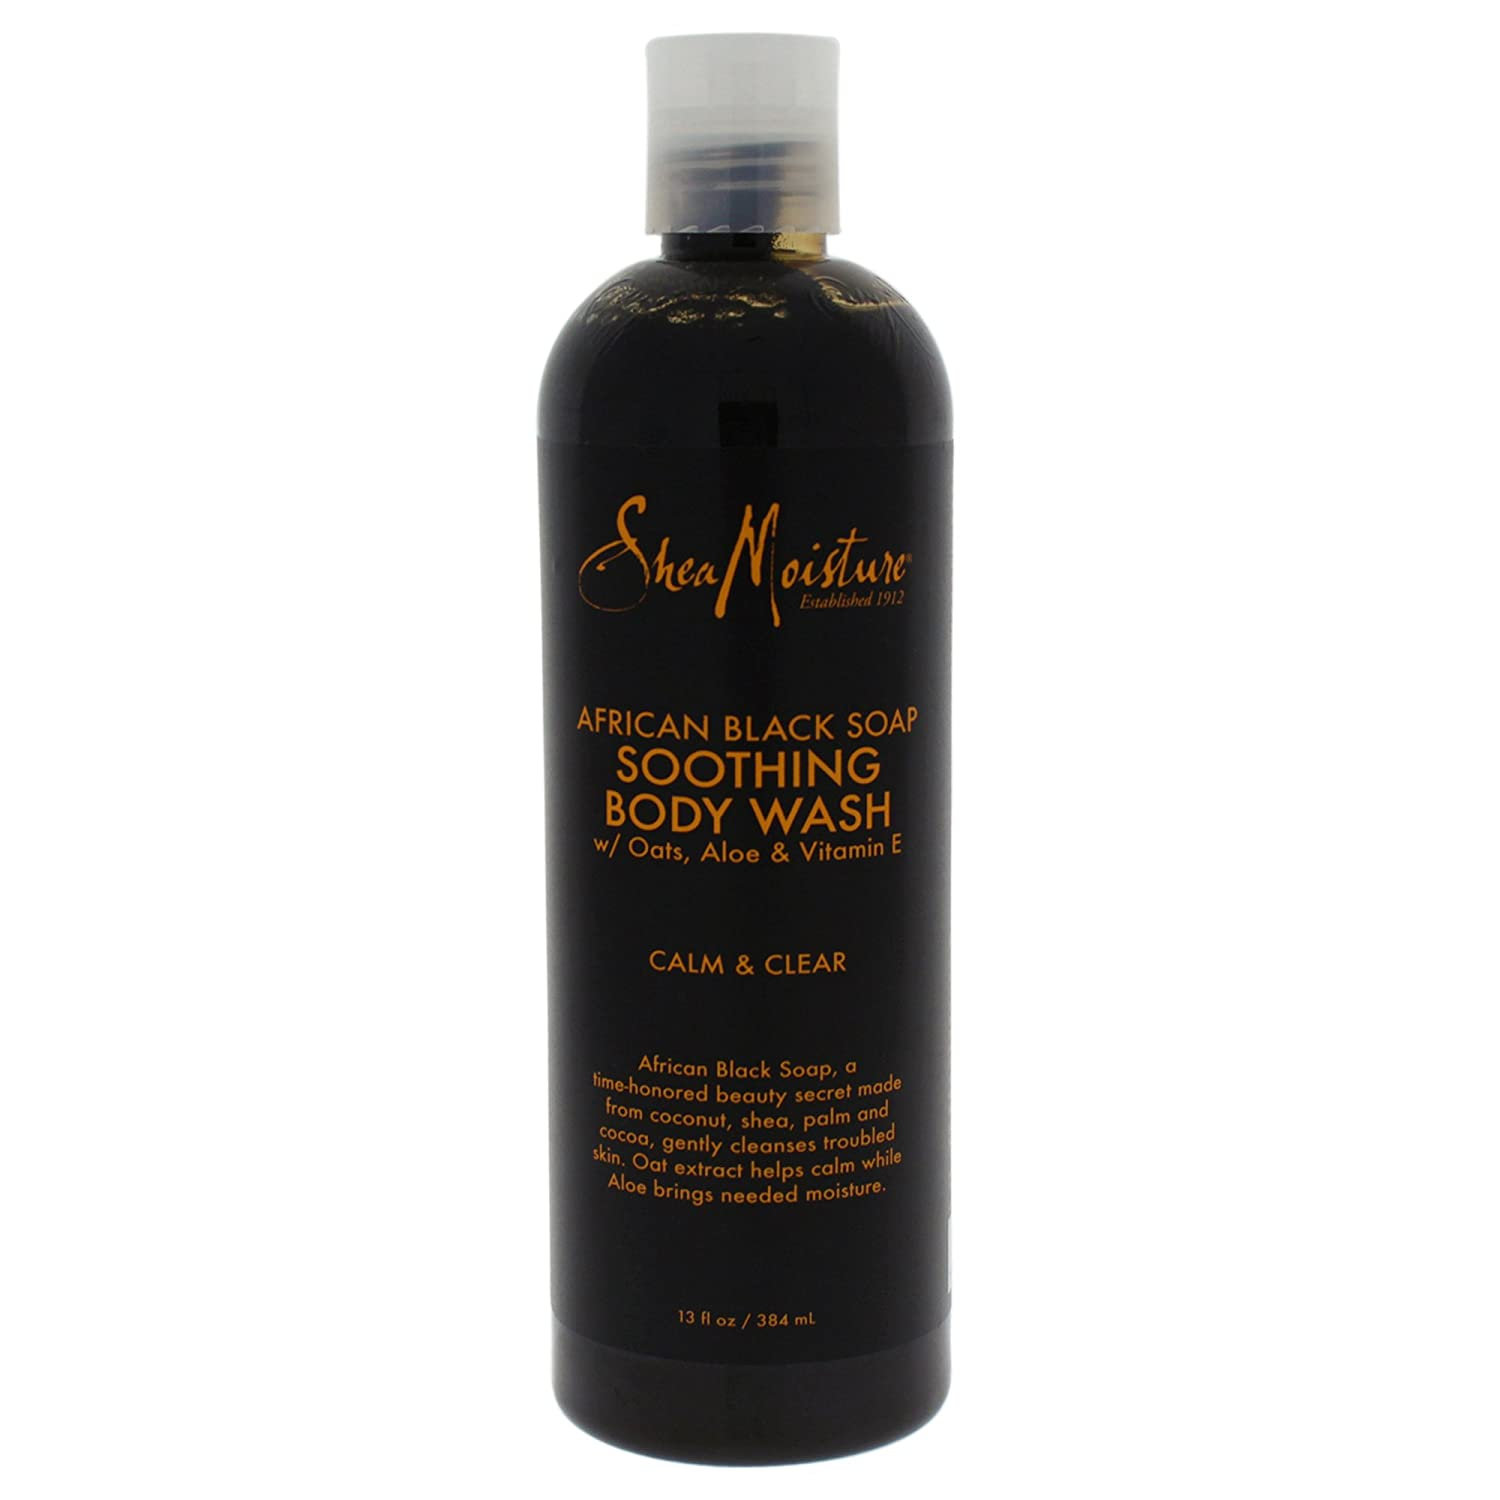 Shea Moisture African Black Soap Body Wash, 384ml U-BB-2885